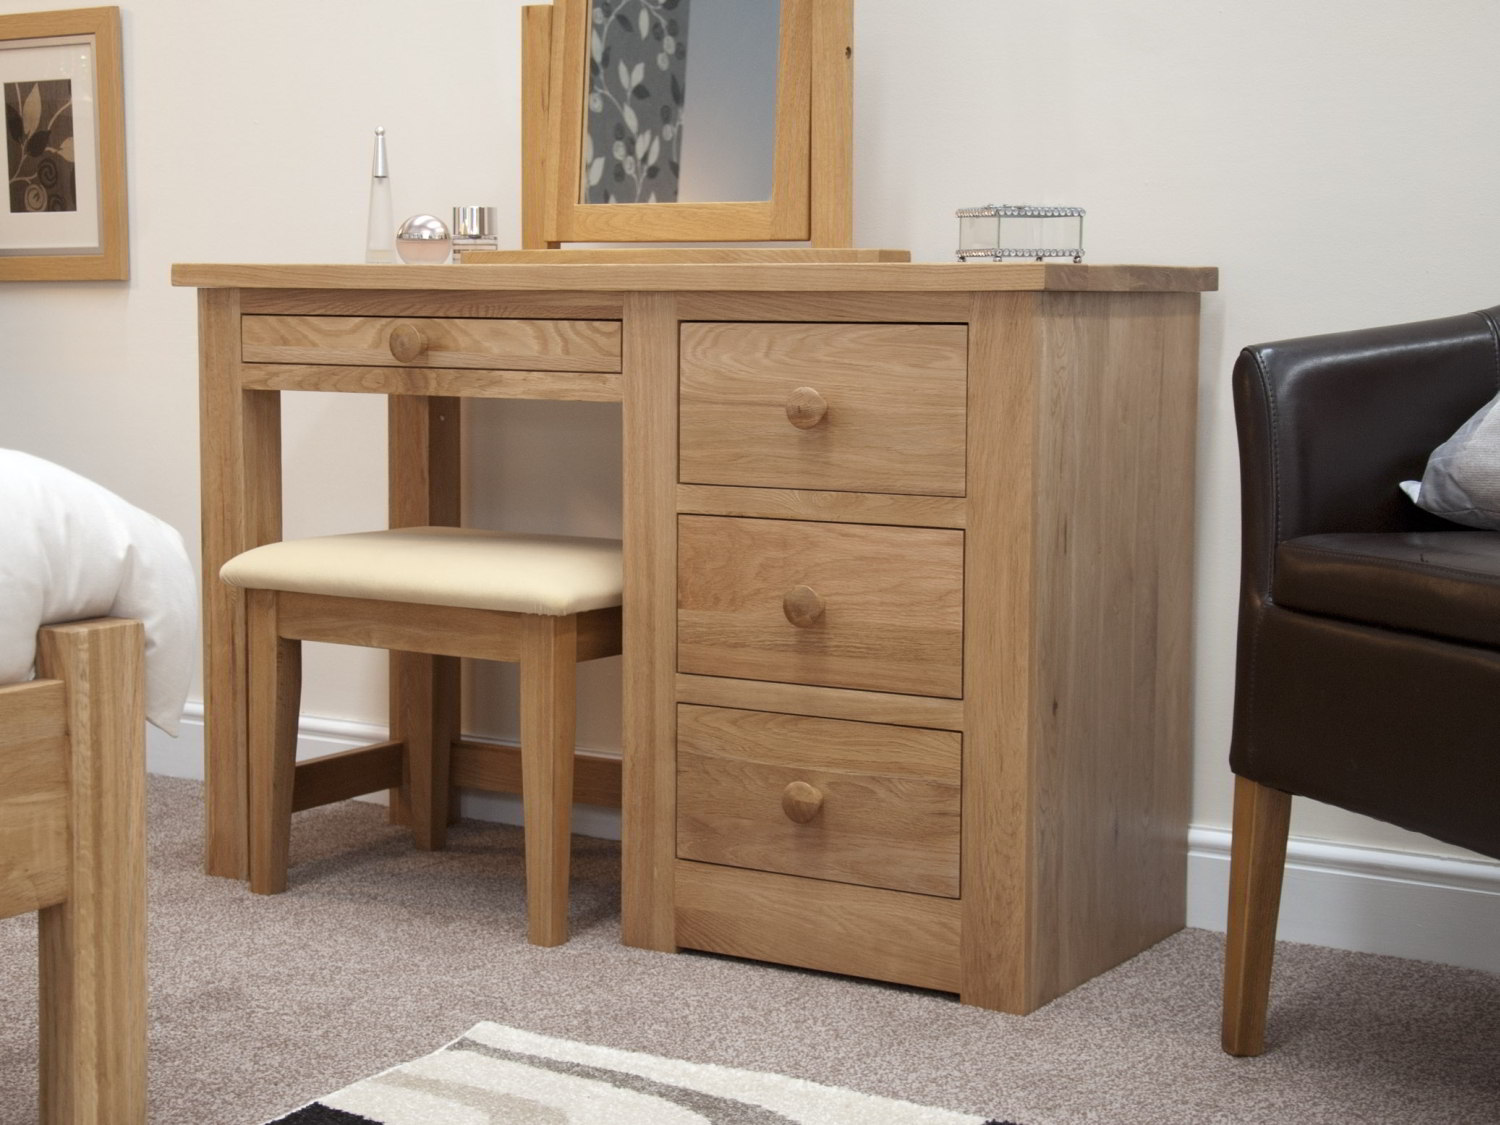 Kingston solid modern oak bedroom furniture dressing table